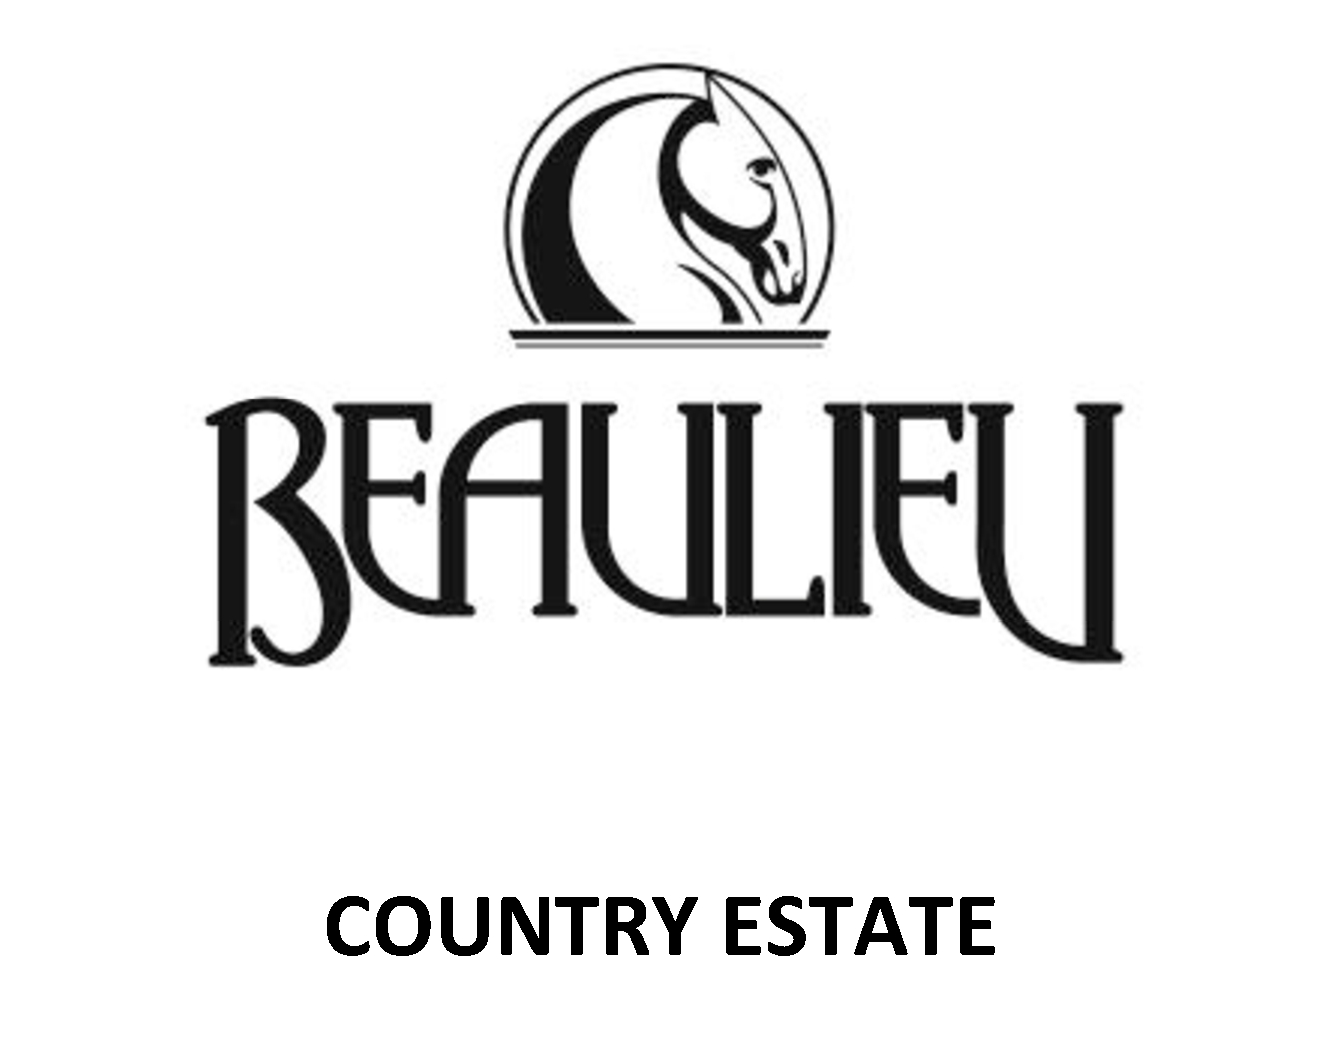 Beaulieu Country Estate is no ordinary estate. This suburb offers accessible country living within a horse paradise conservancy.